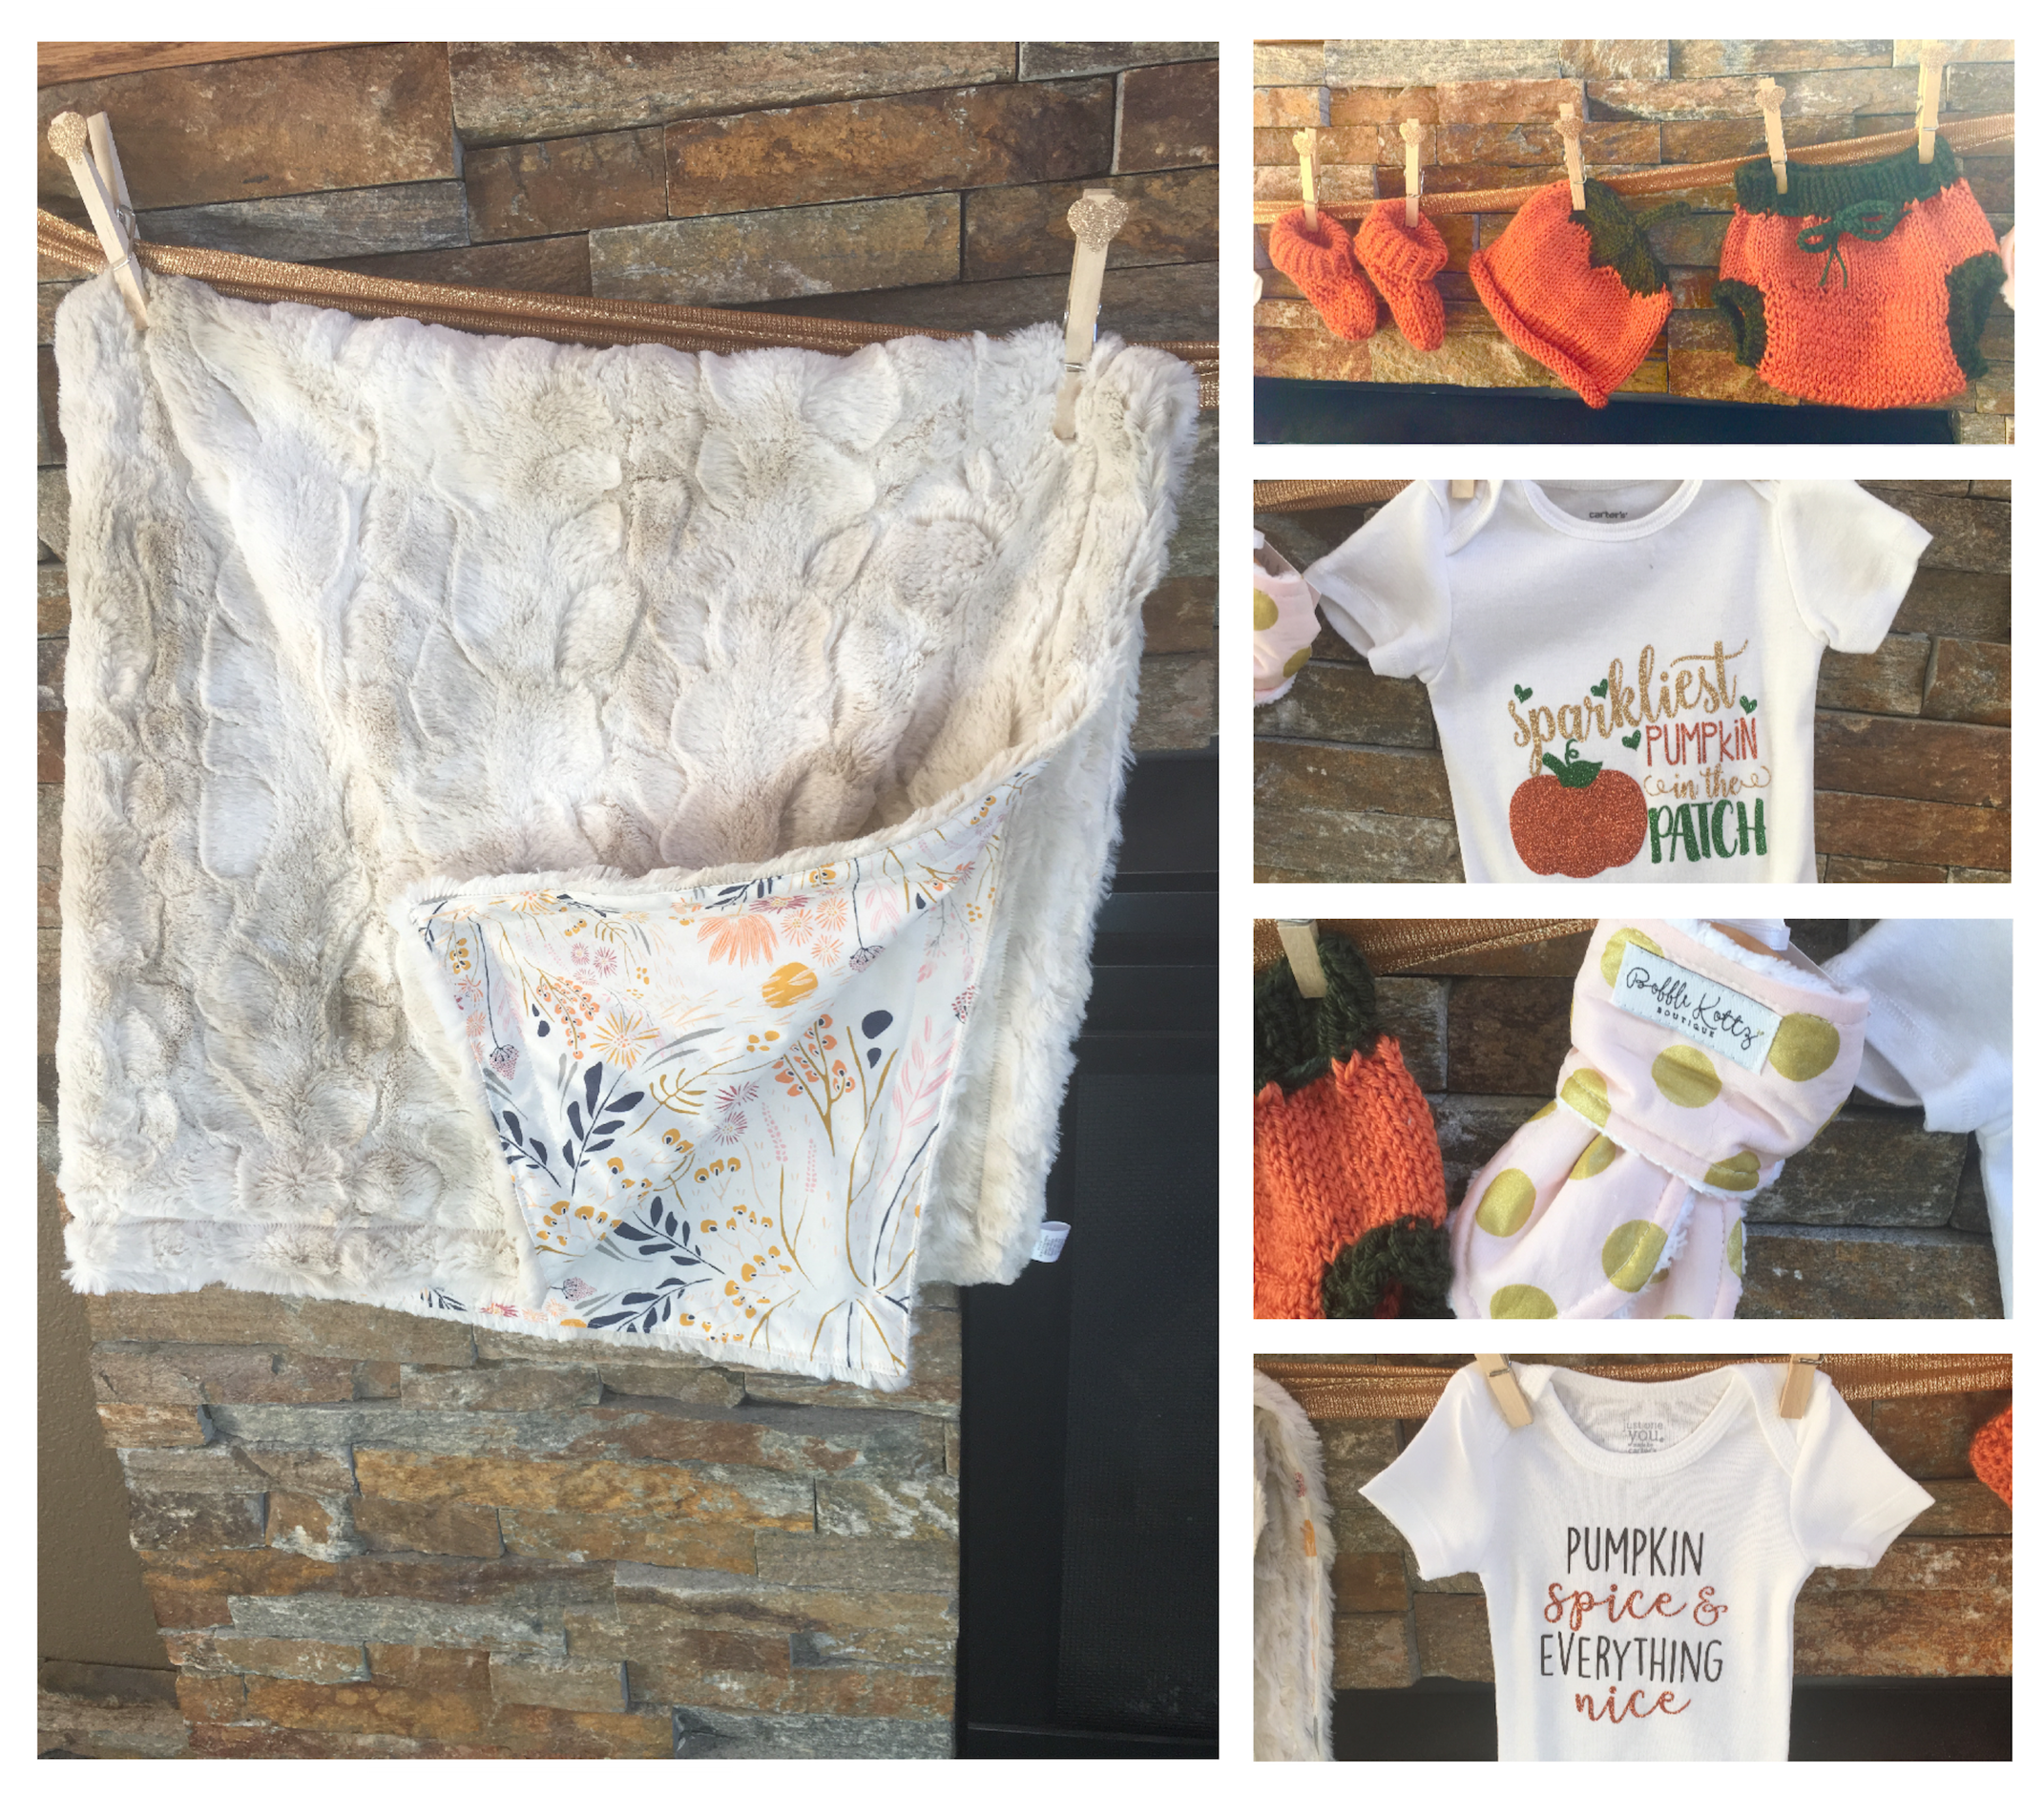 Baby Shower, Made in Colorado | Real Estate and Lifestyle in Northern Colorado | A blog by Joanna Gyrath, Realtor | Fort Collins, Loveland, Windsor, Timnath, Severance, Greeley, Laporte, Bellvue, Berthoud, Longmont, Wellington, Johnstown, Milliken | Search listings, homes for sale, MLS